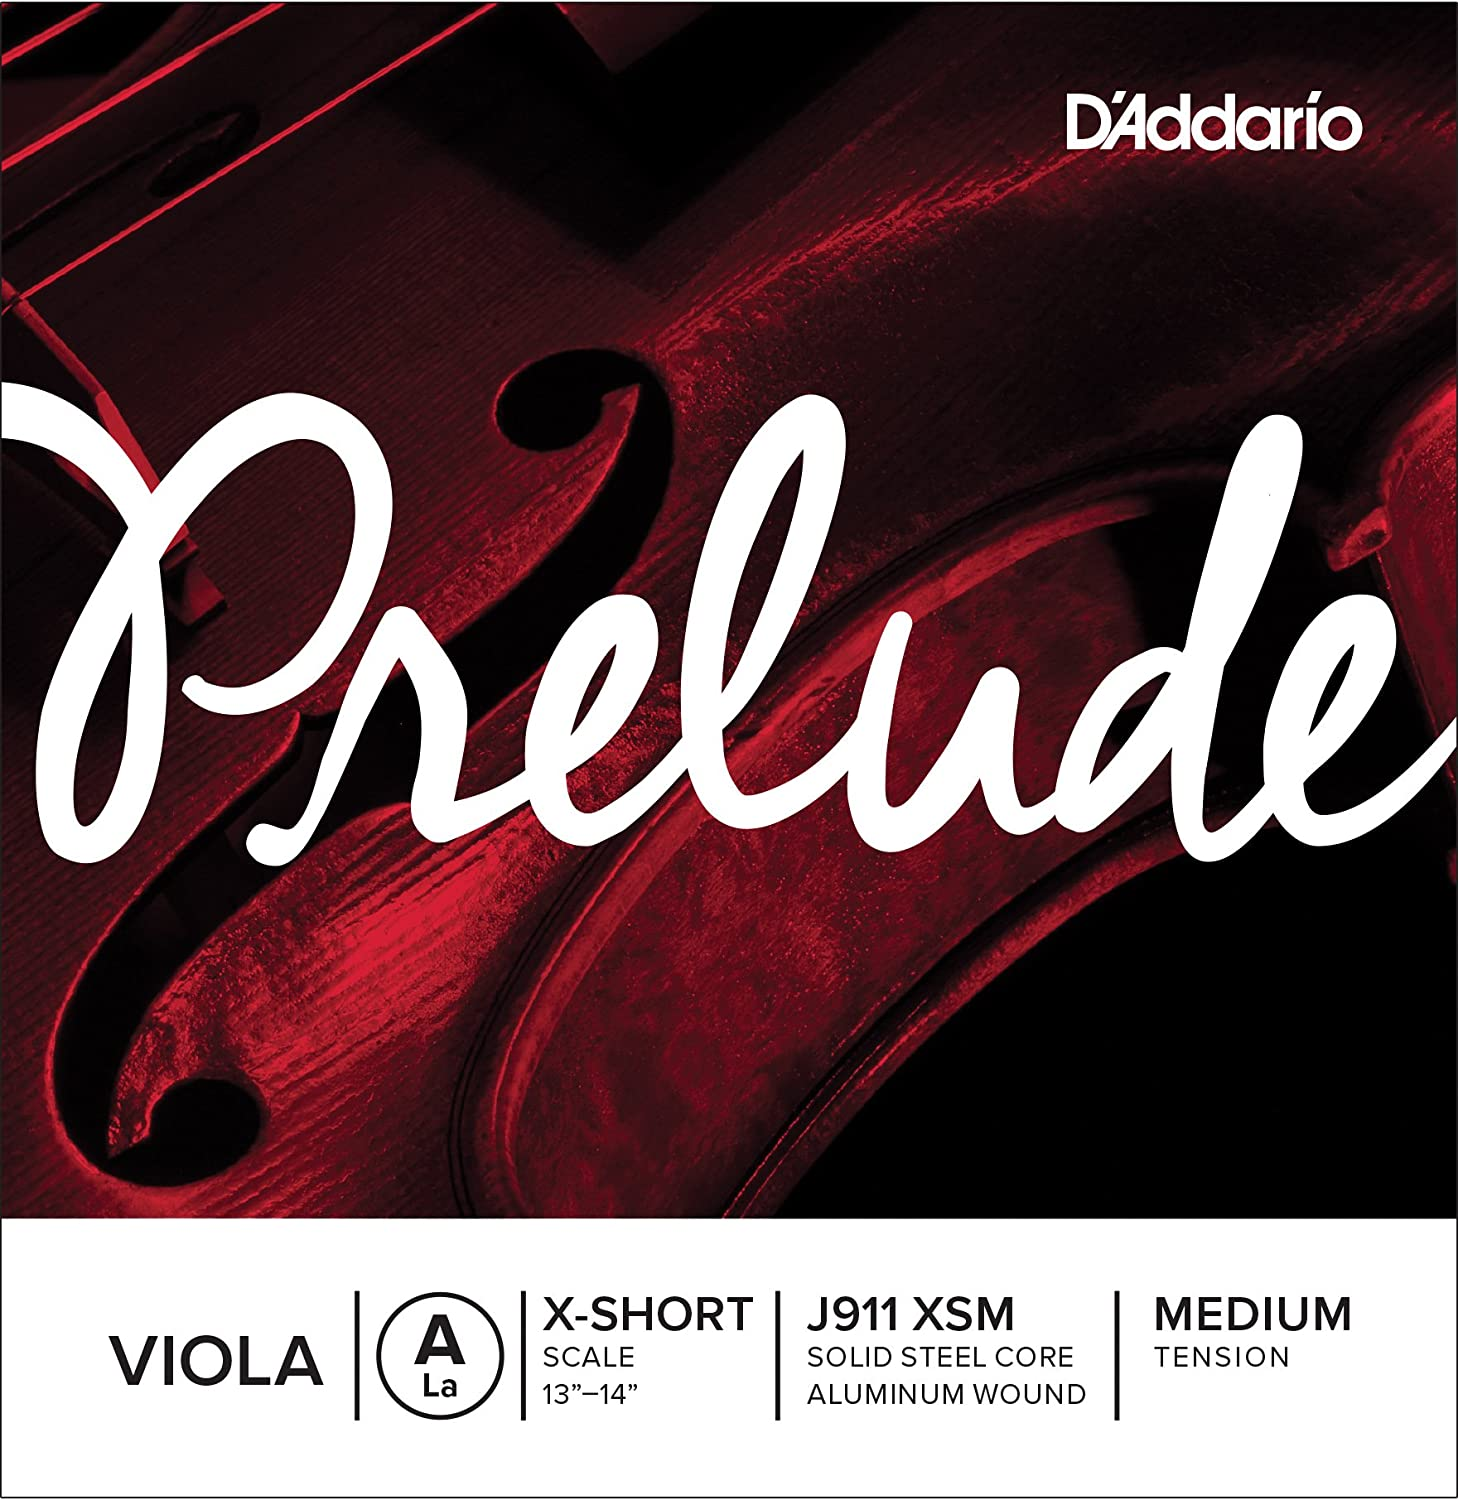 D'Addario Prelude Viola Single A String, Medium Scale, Medium Tension D'Addario &Co. Inc J911 MM